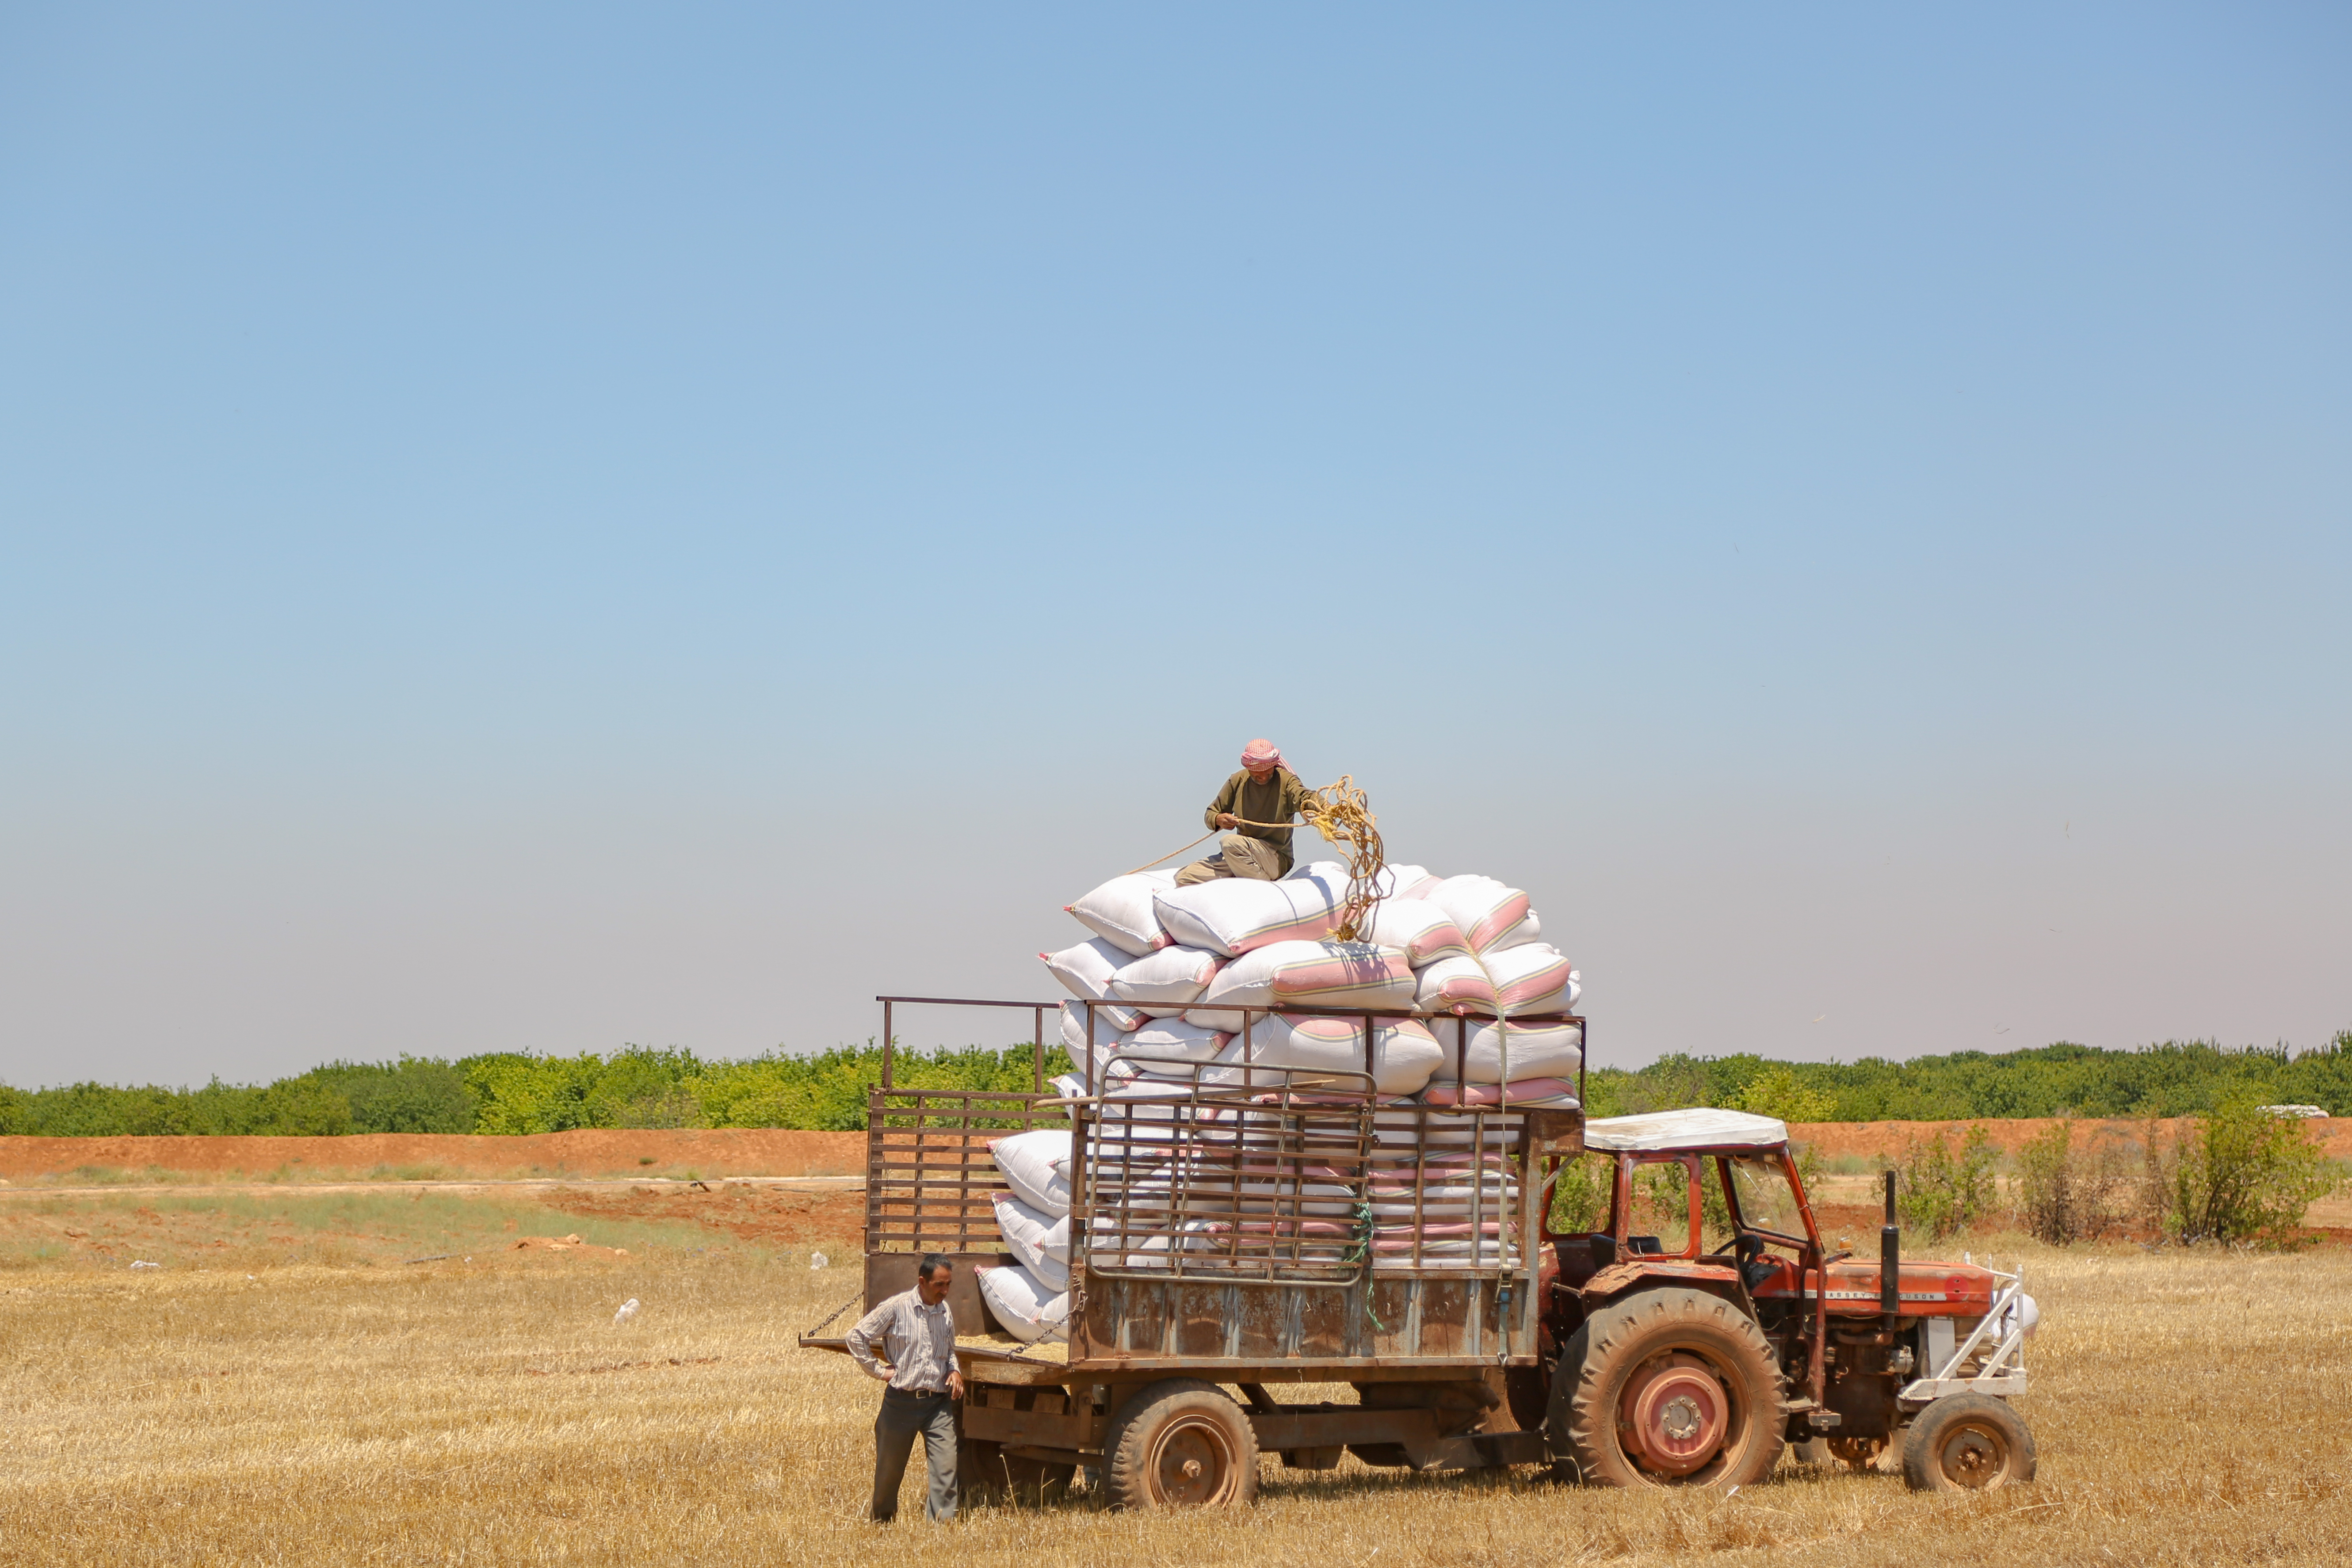 A group of people in a field harvesting onions